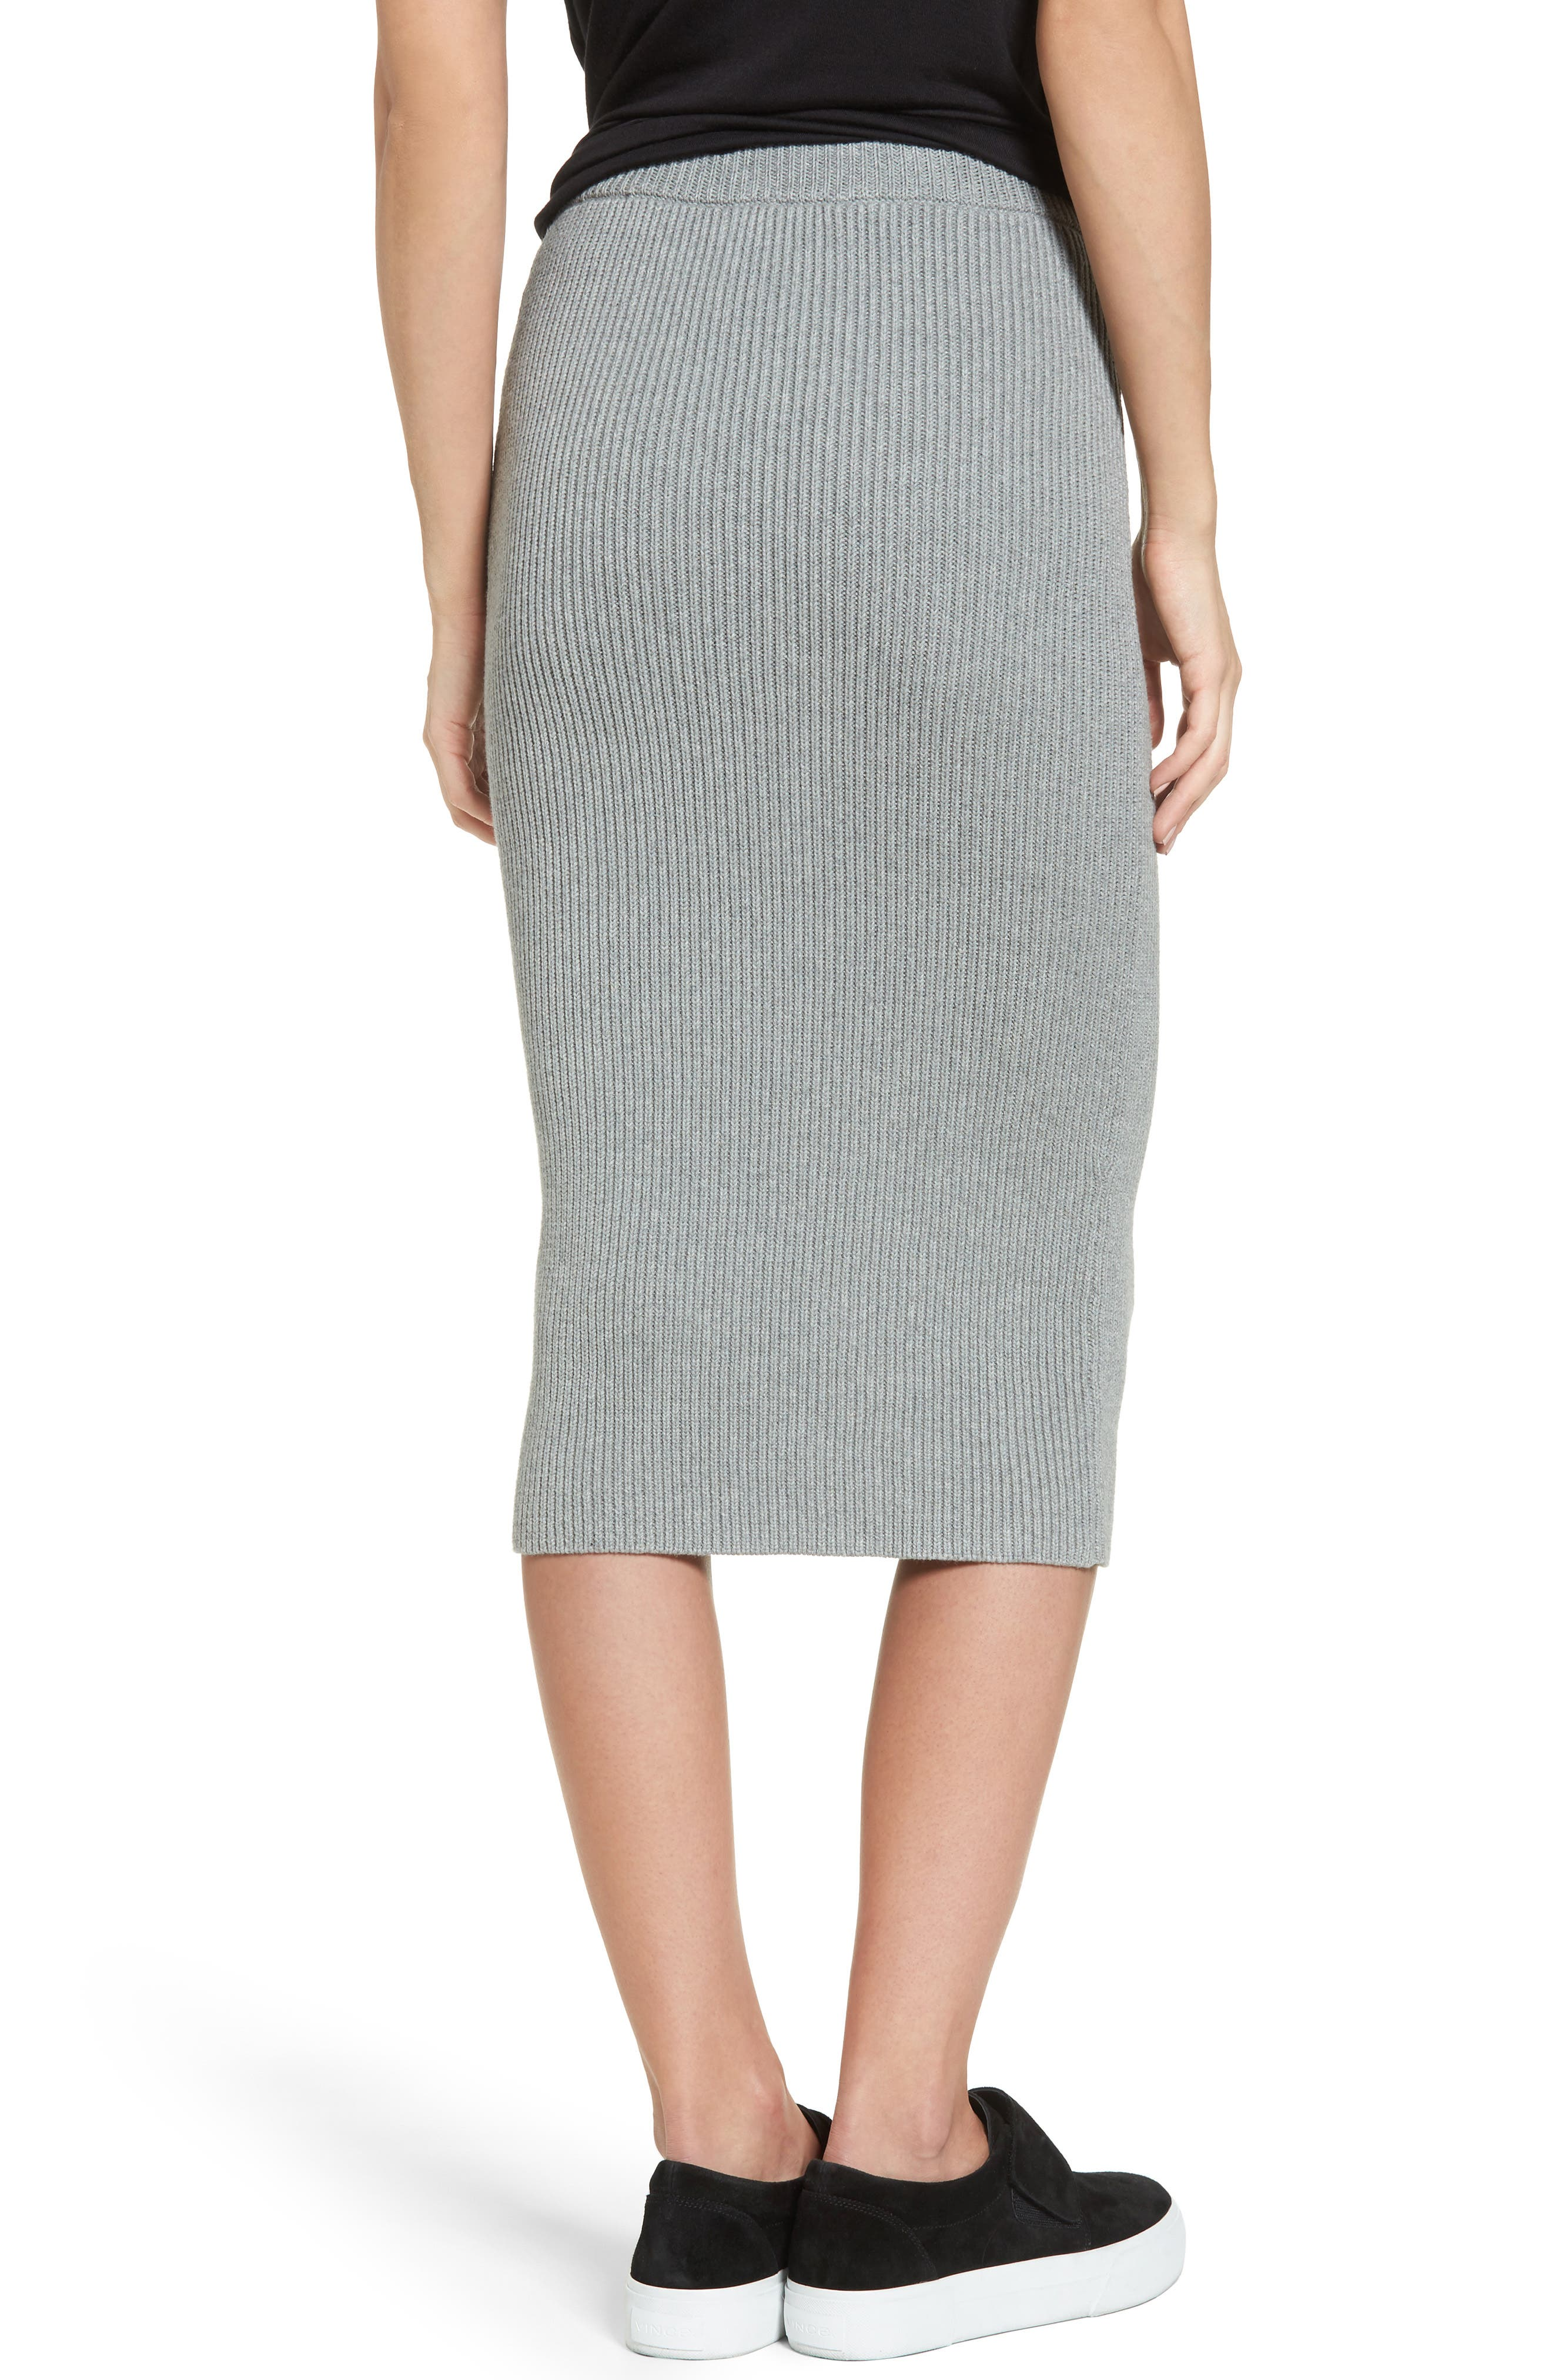 Alternate Image 2  - The Fifth Label Galactic Knit Skirt